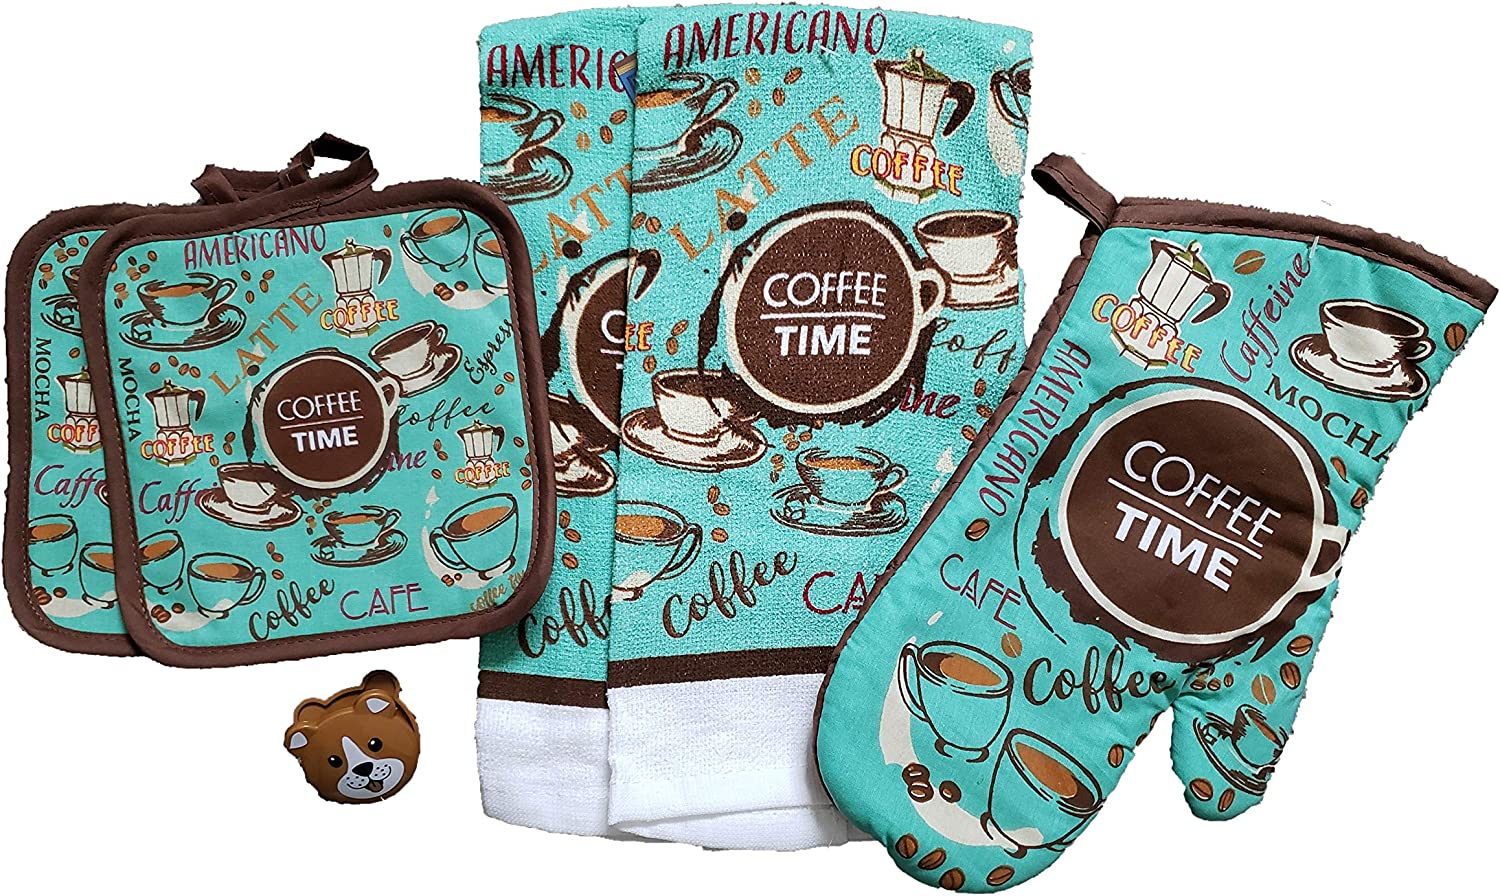 'Coffee Time' Sentiment Kitchen Towel Set with 2 Quilted Pot Holders, 2 Dish Towels and 1 Oven Mitt